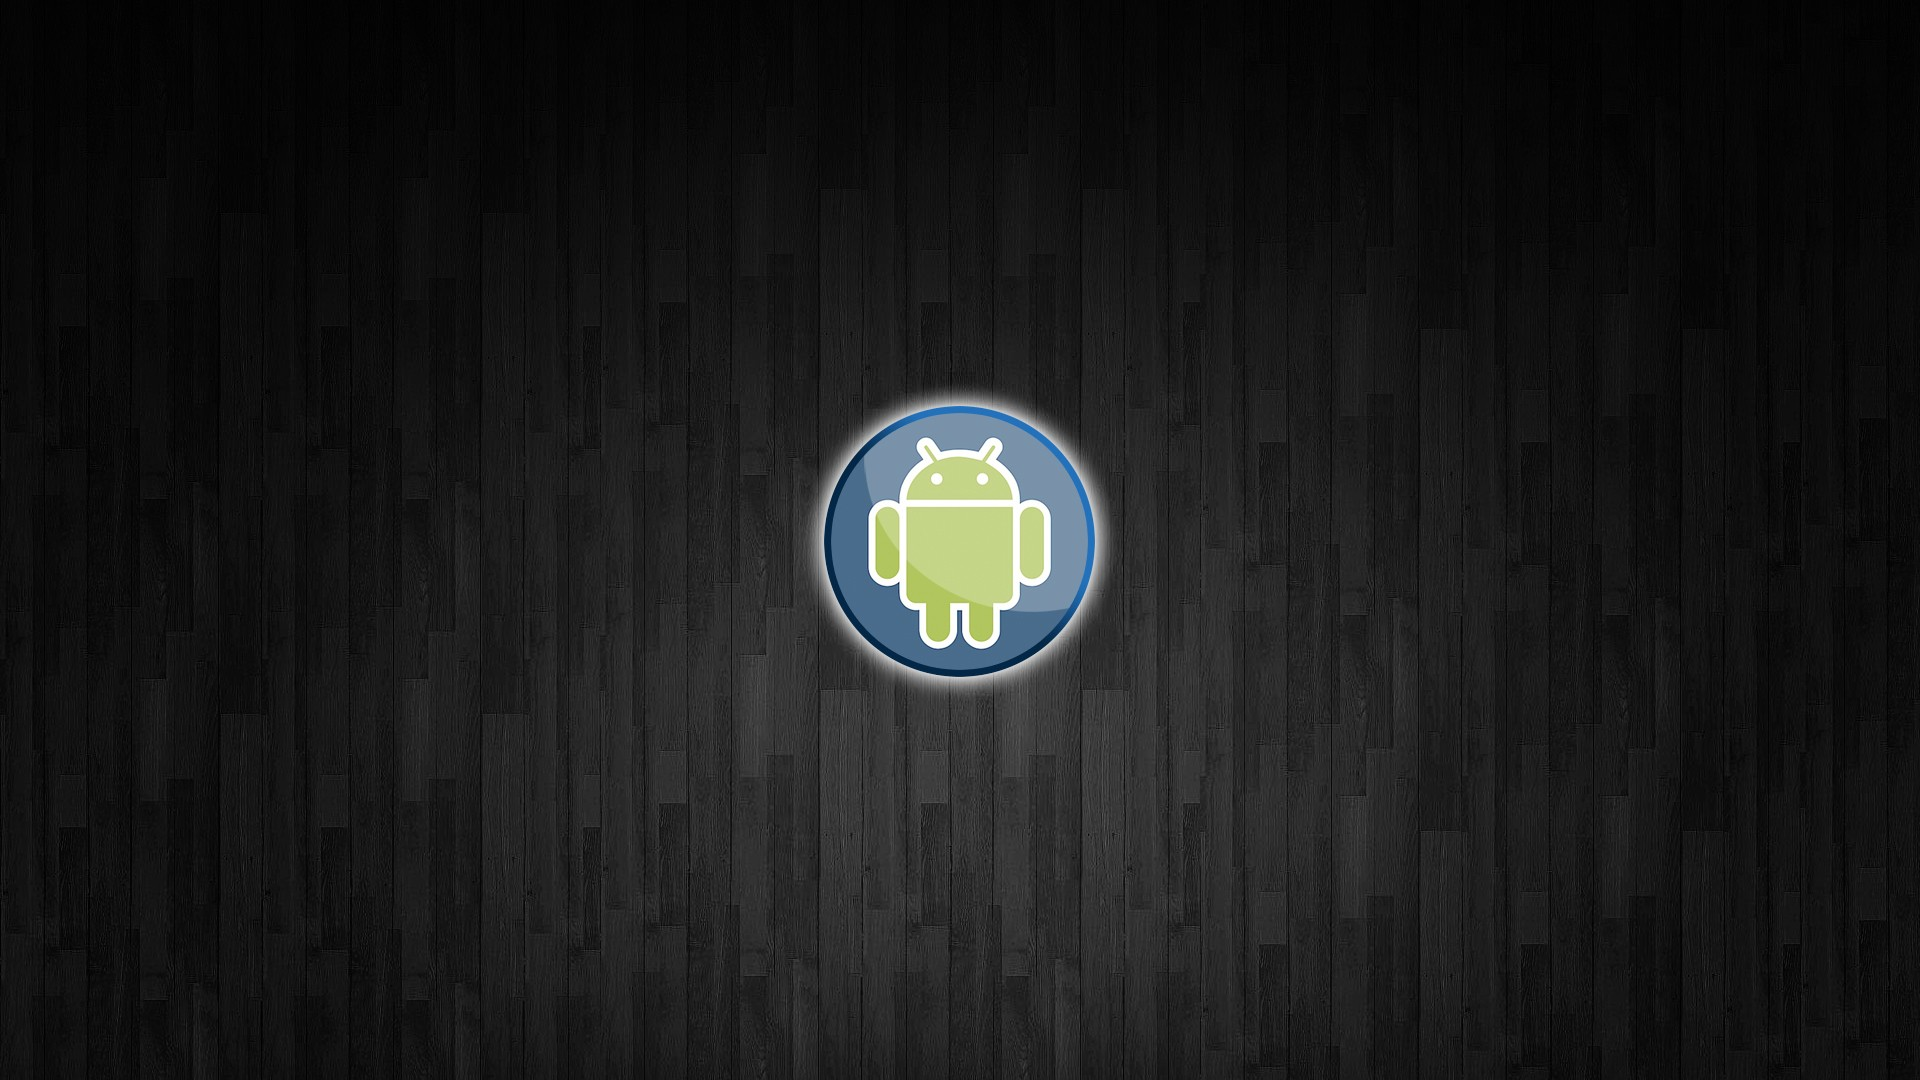 Sports Wallpaper App Android: FanSided Releases New Android App